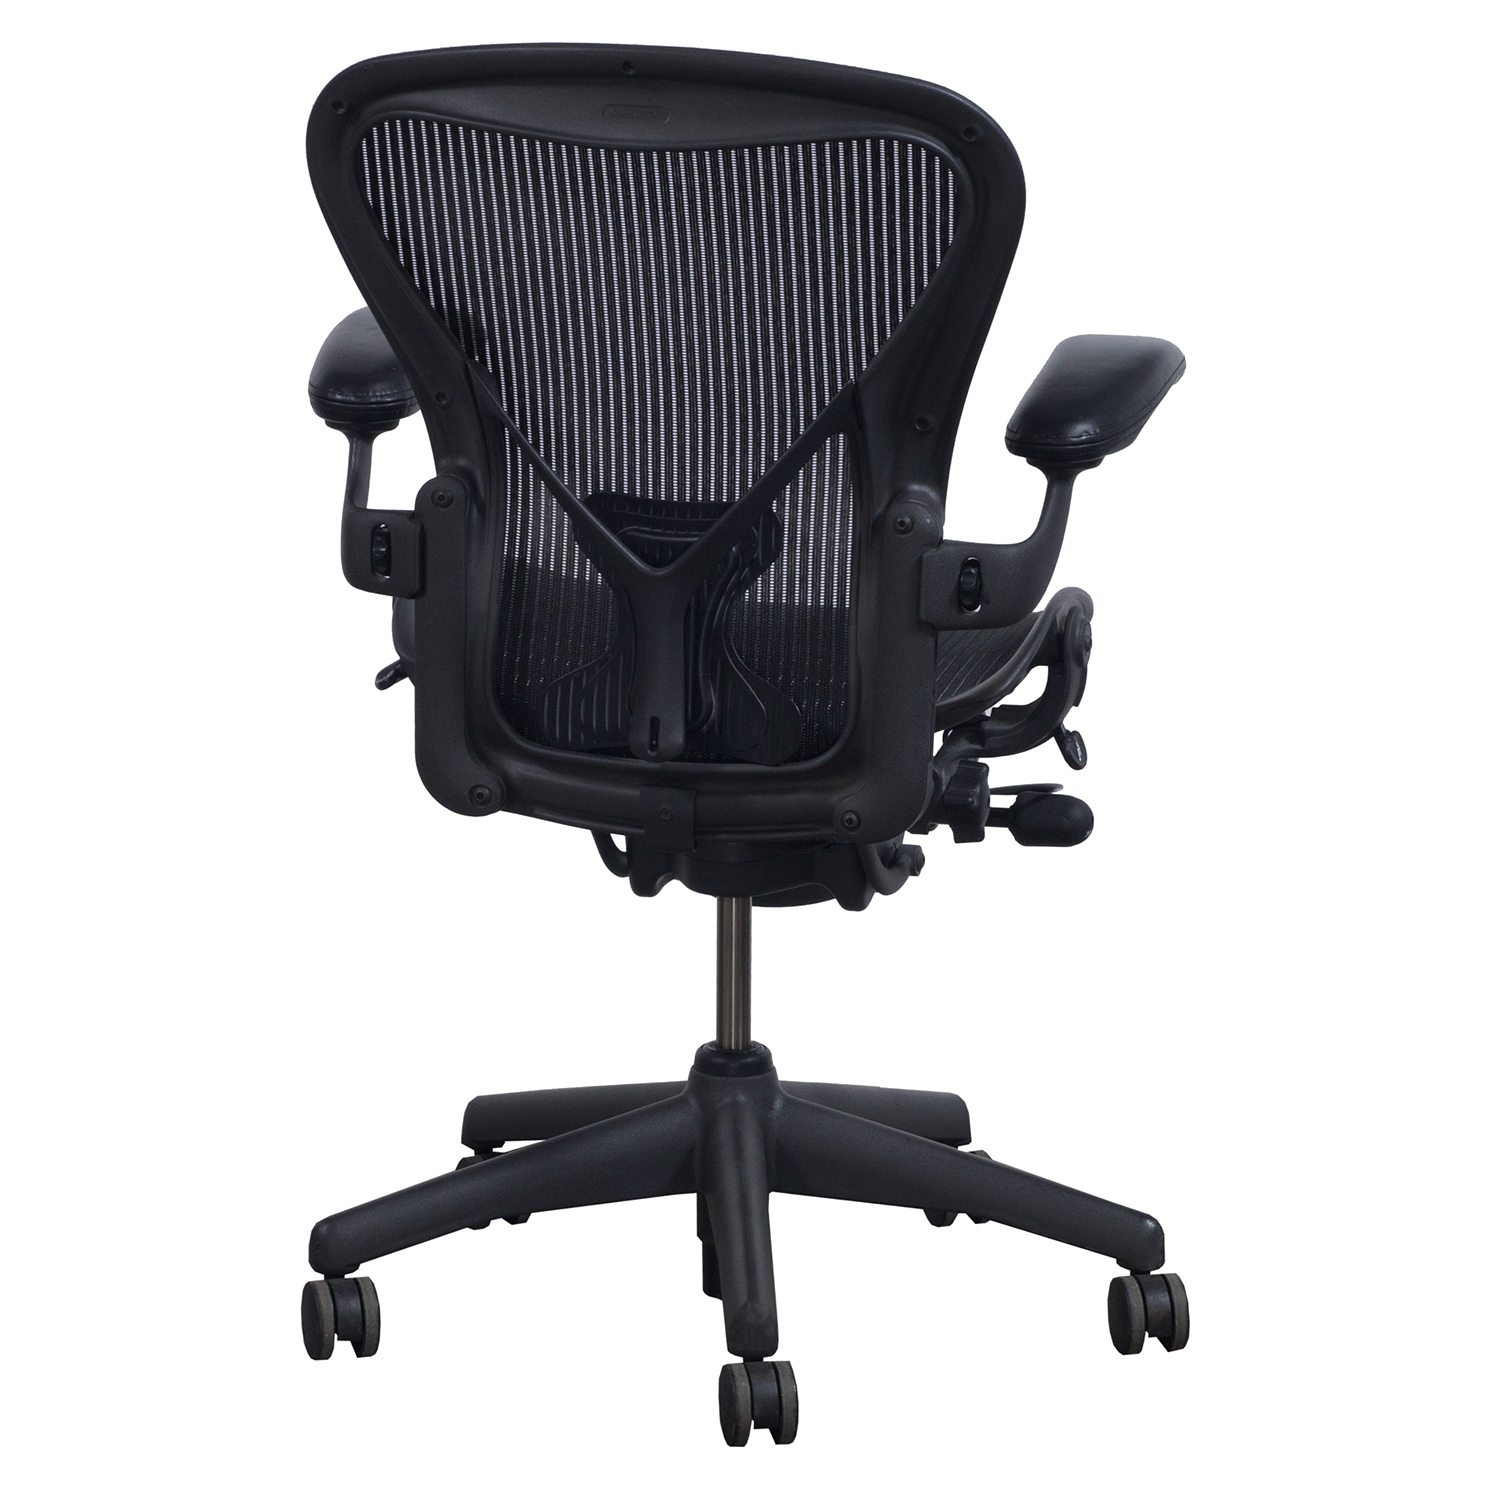 aeron chair sizes the egg herman miller posturefit used size b leather arm